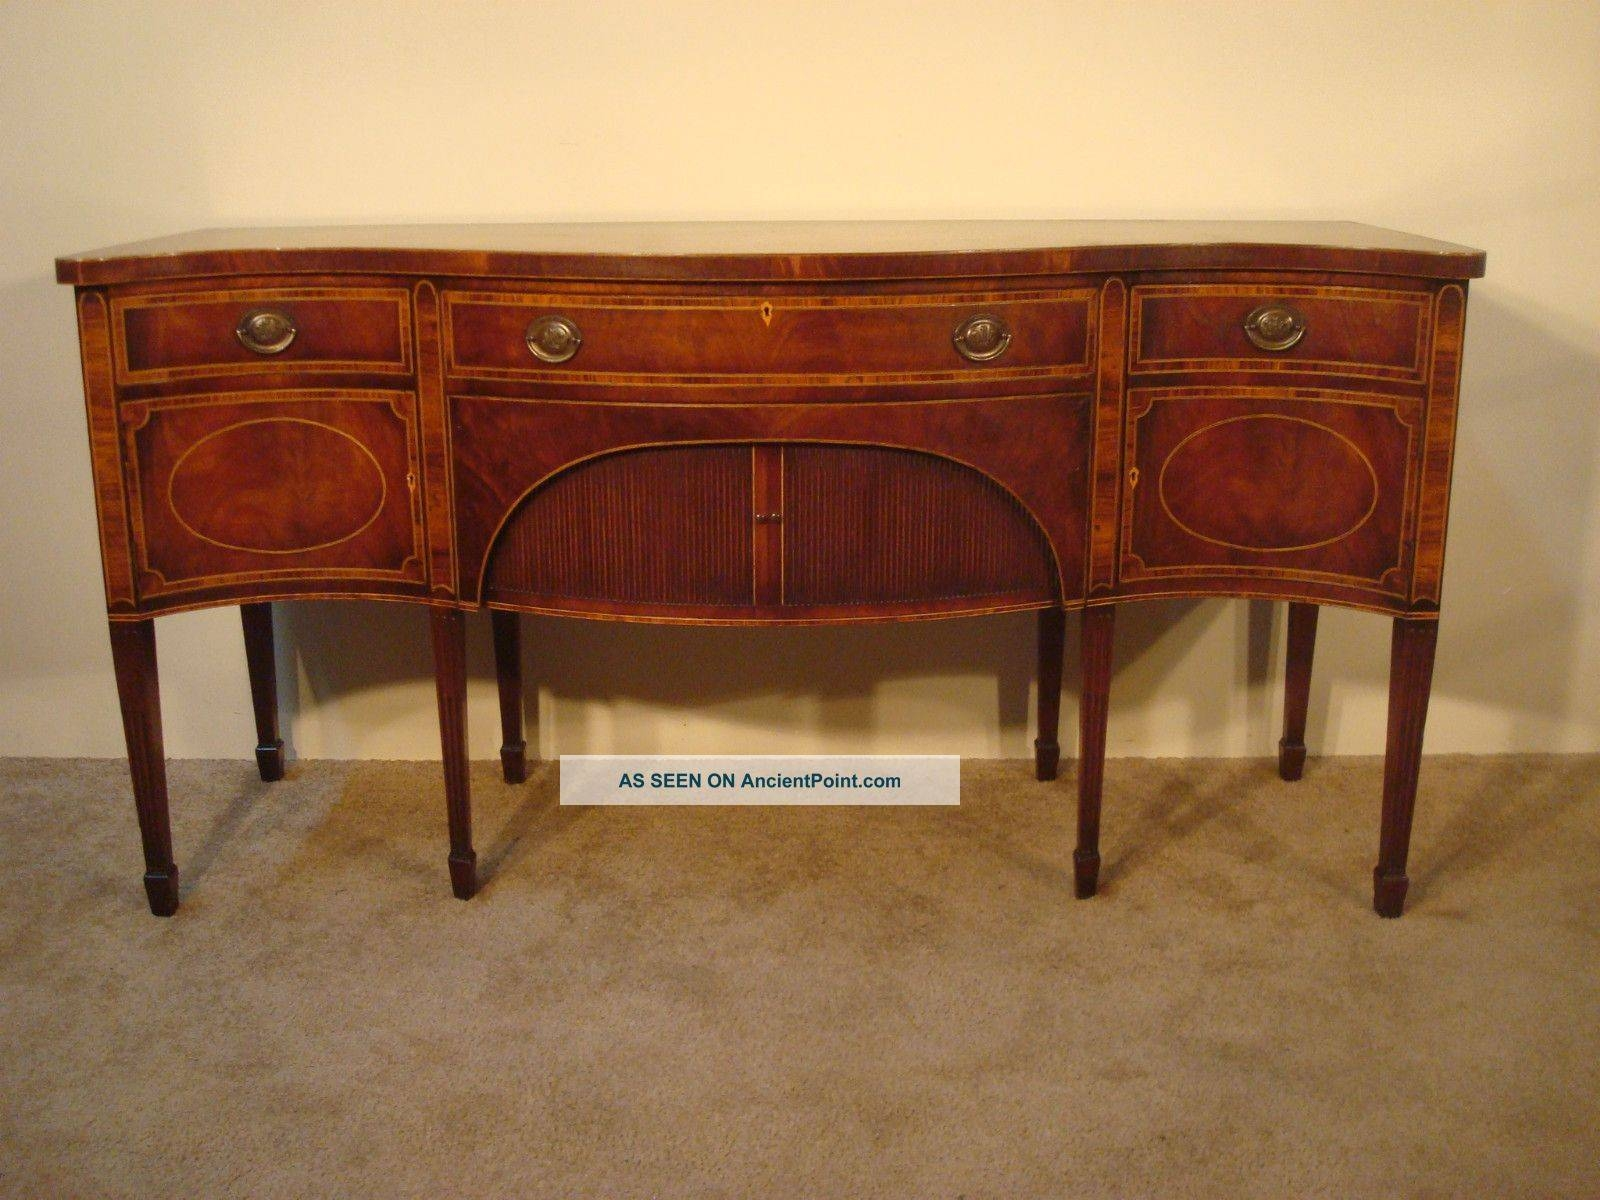 Antique Mahogany Furniture Throughout Hepplewhite Sideboards (View 3 of 15)